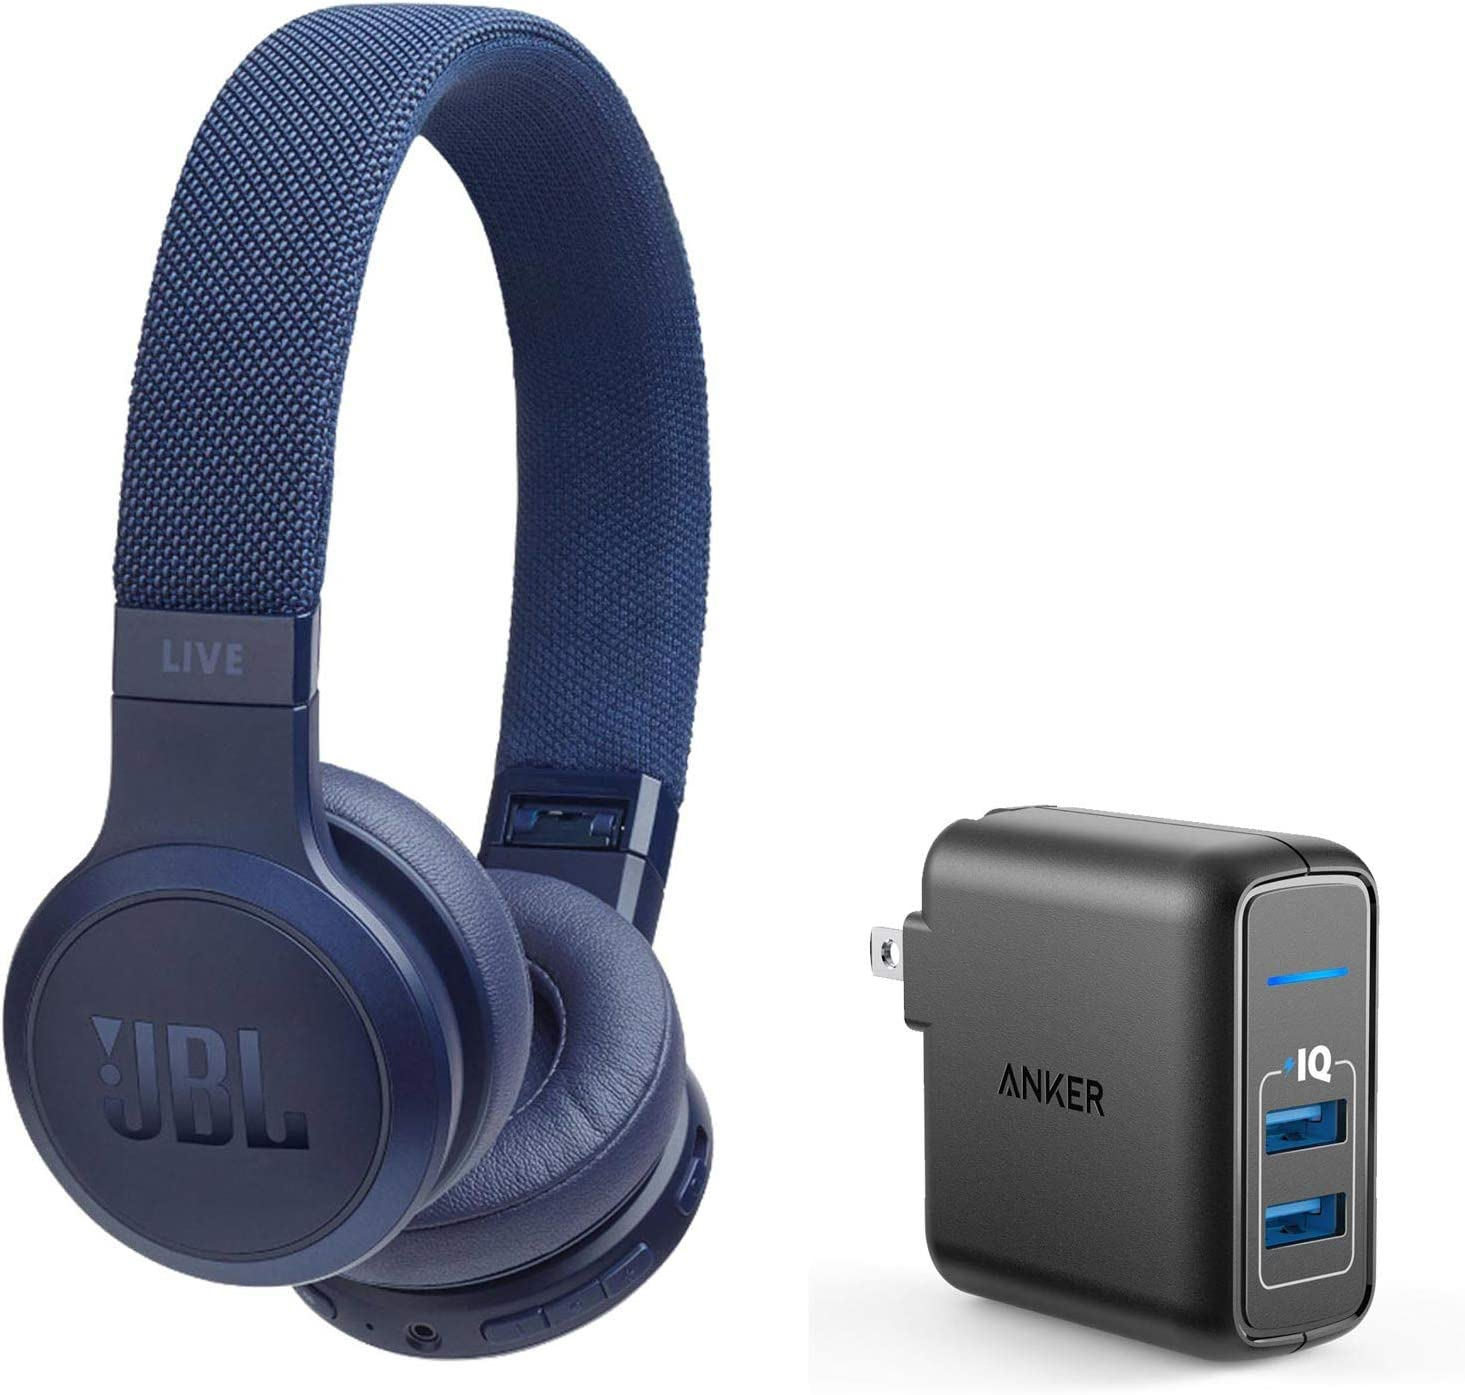 JBL Live 400BT On-Ear Wireless Bluetooth Headphones Bundle with Anker PowerPort Elite 2 Port USB Wall Charger - Blue